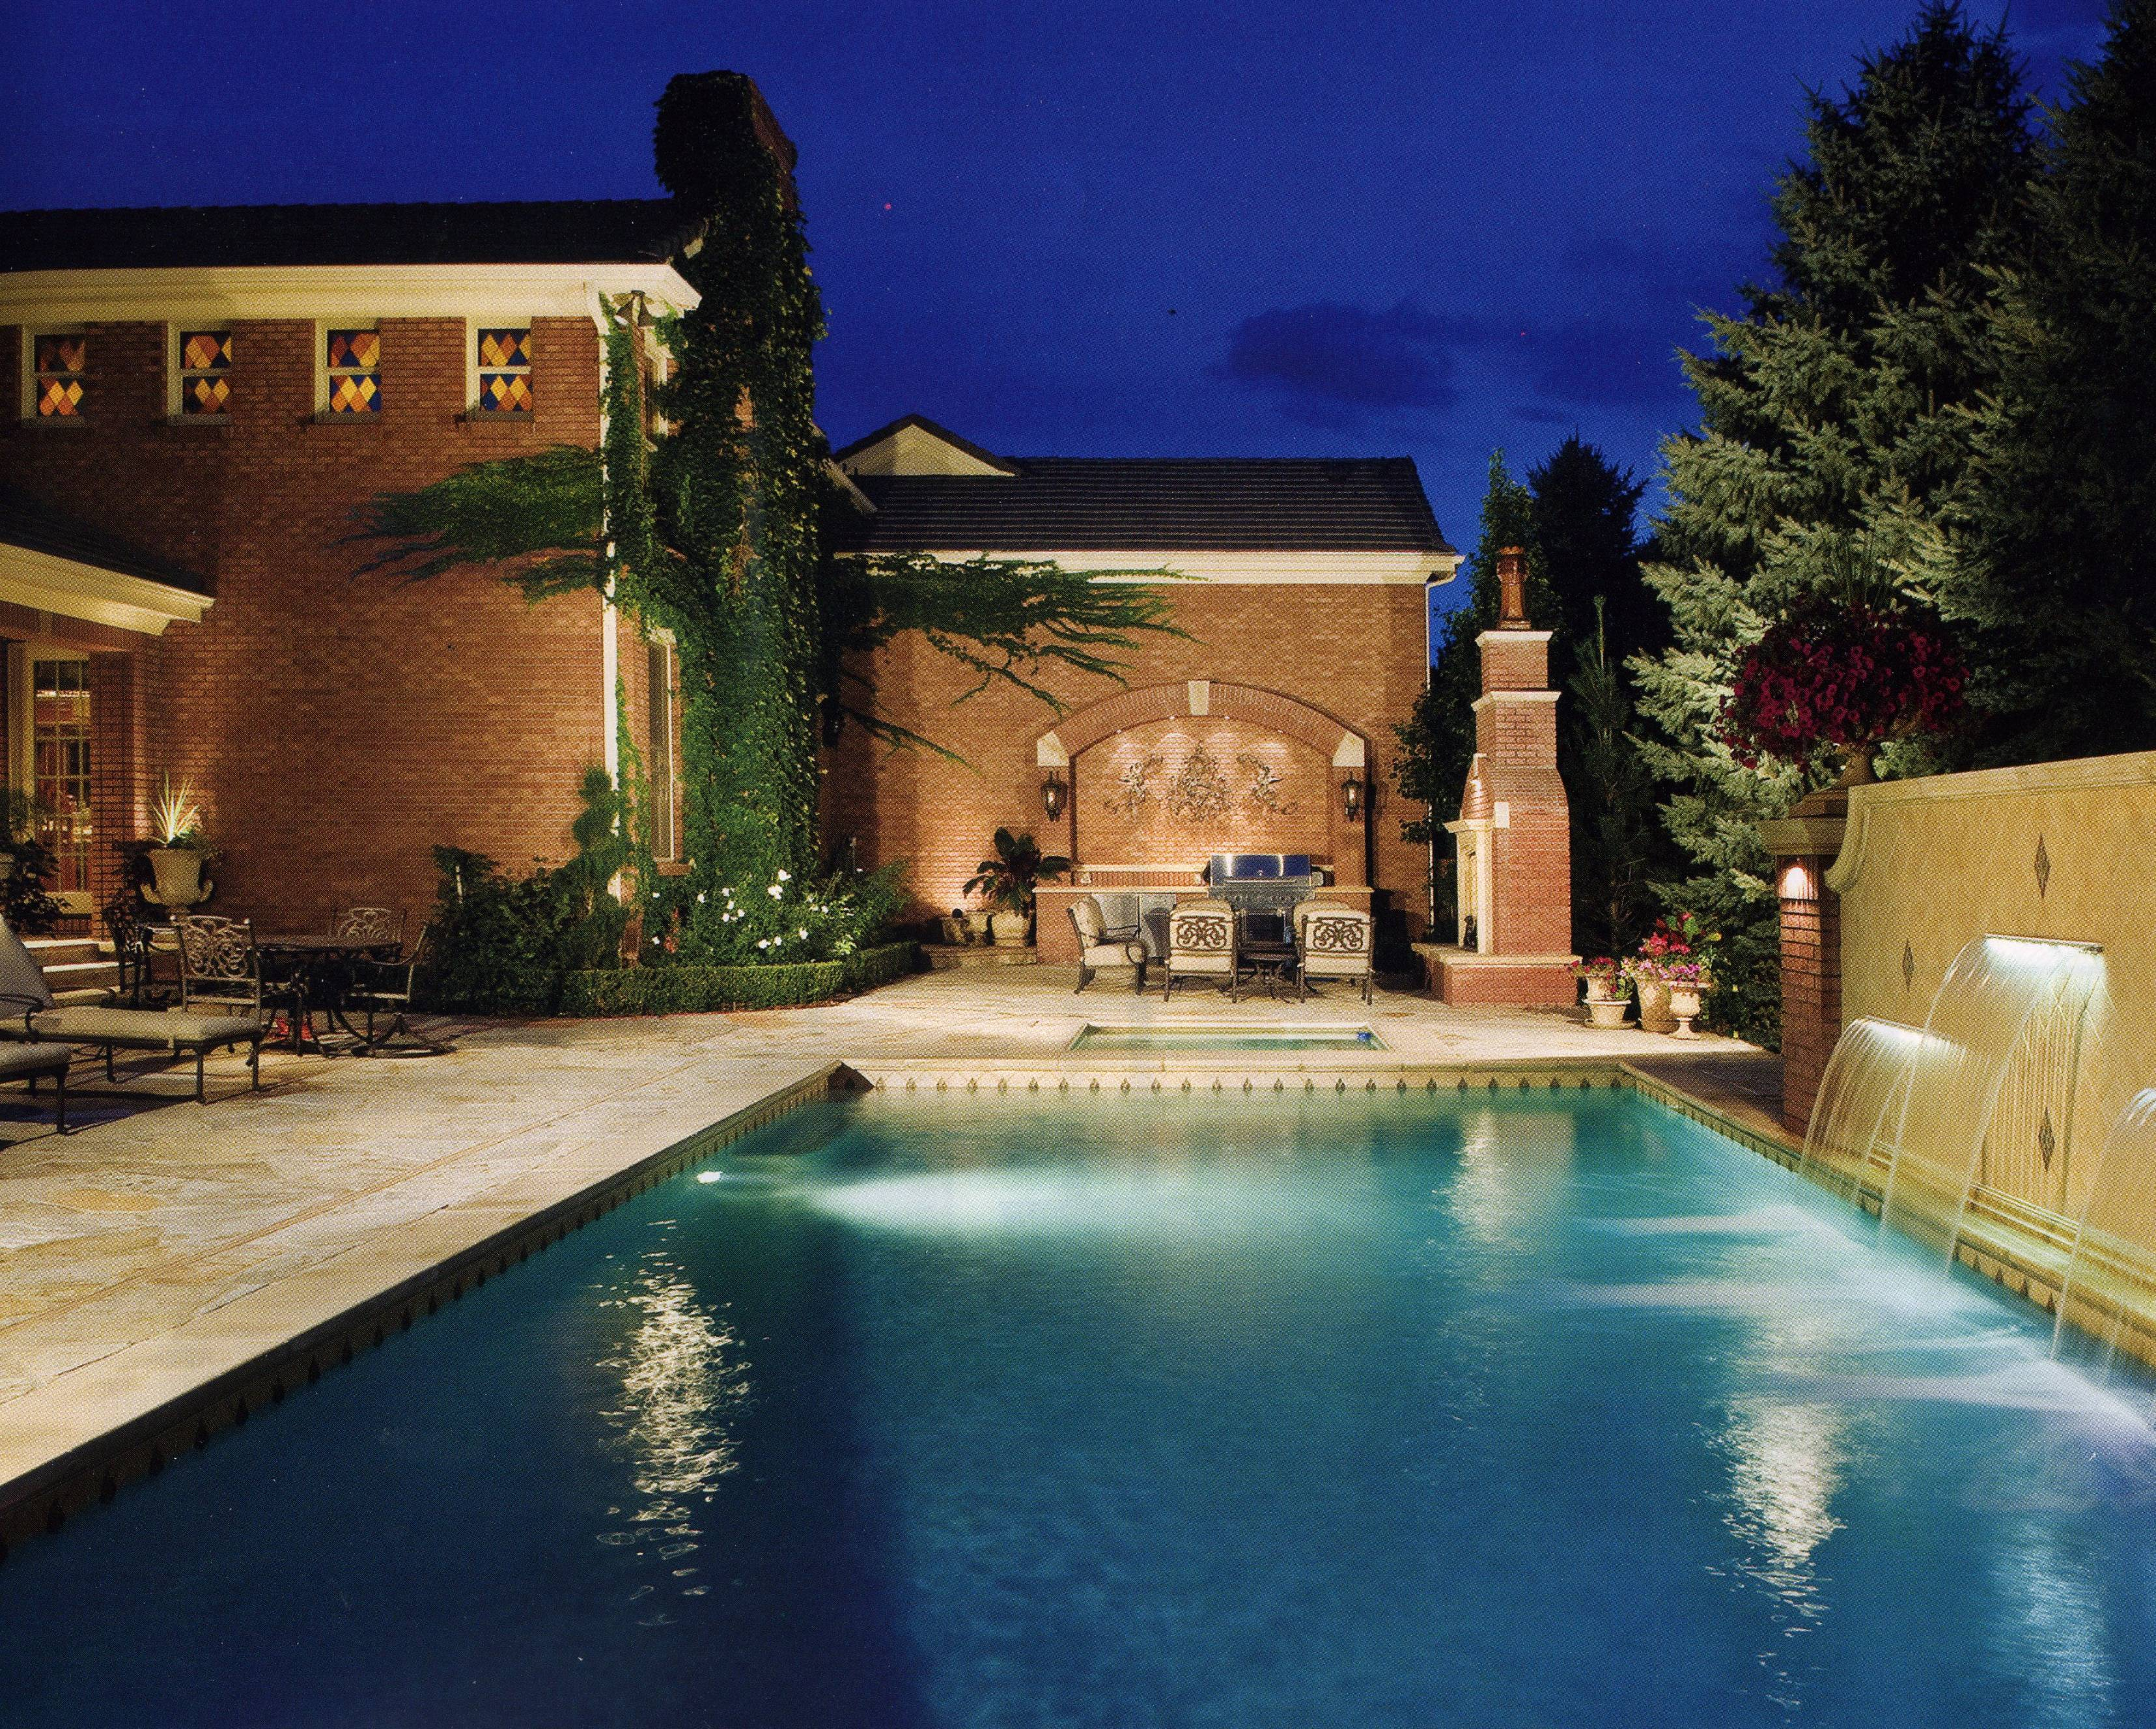 Denver Pool and Water Feature Lighting Outdoor Lighting Perspectives